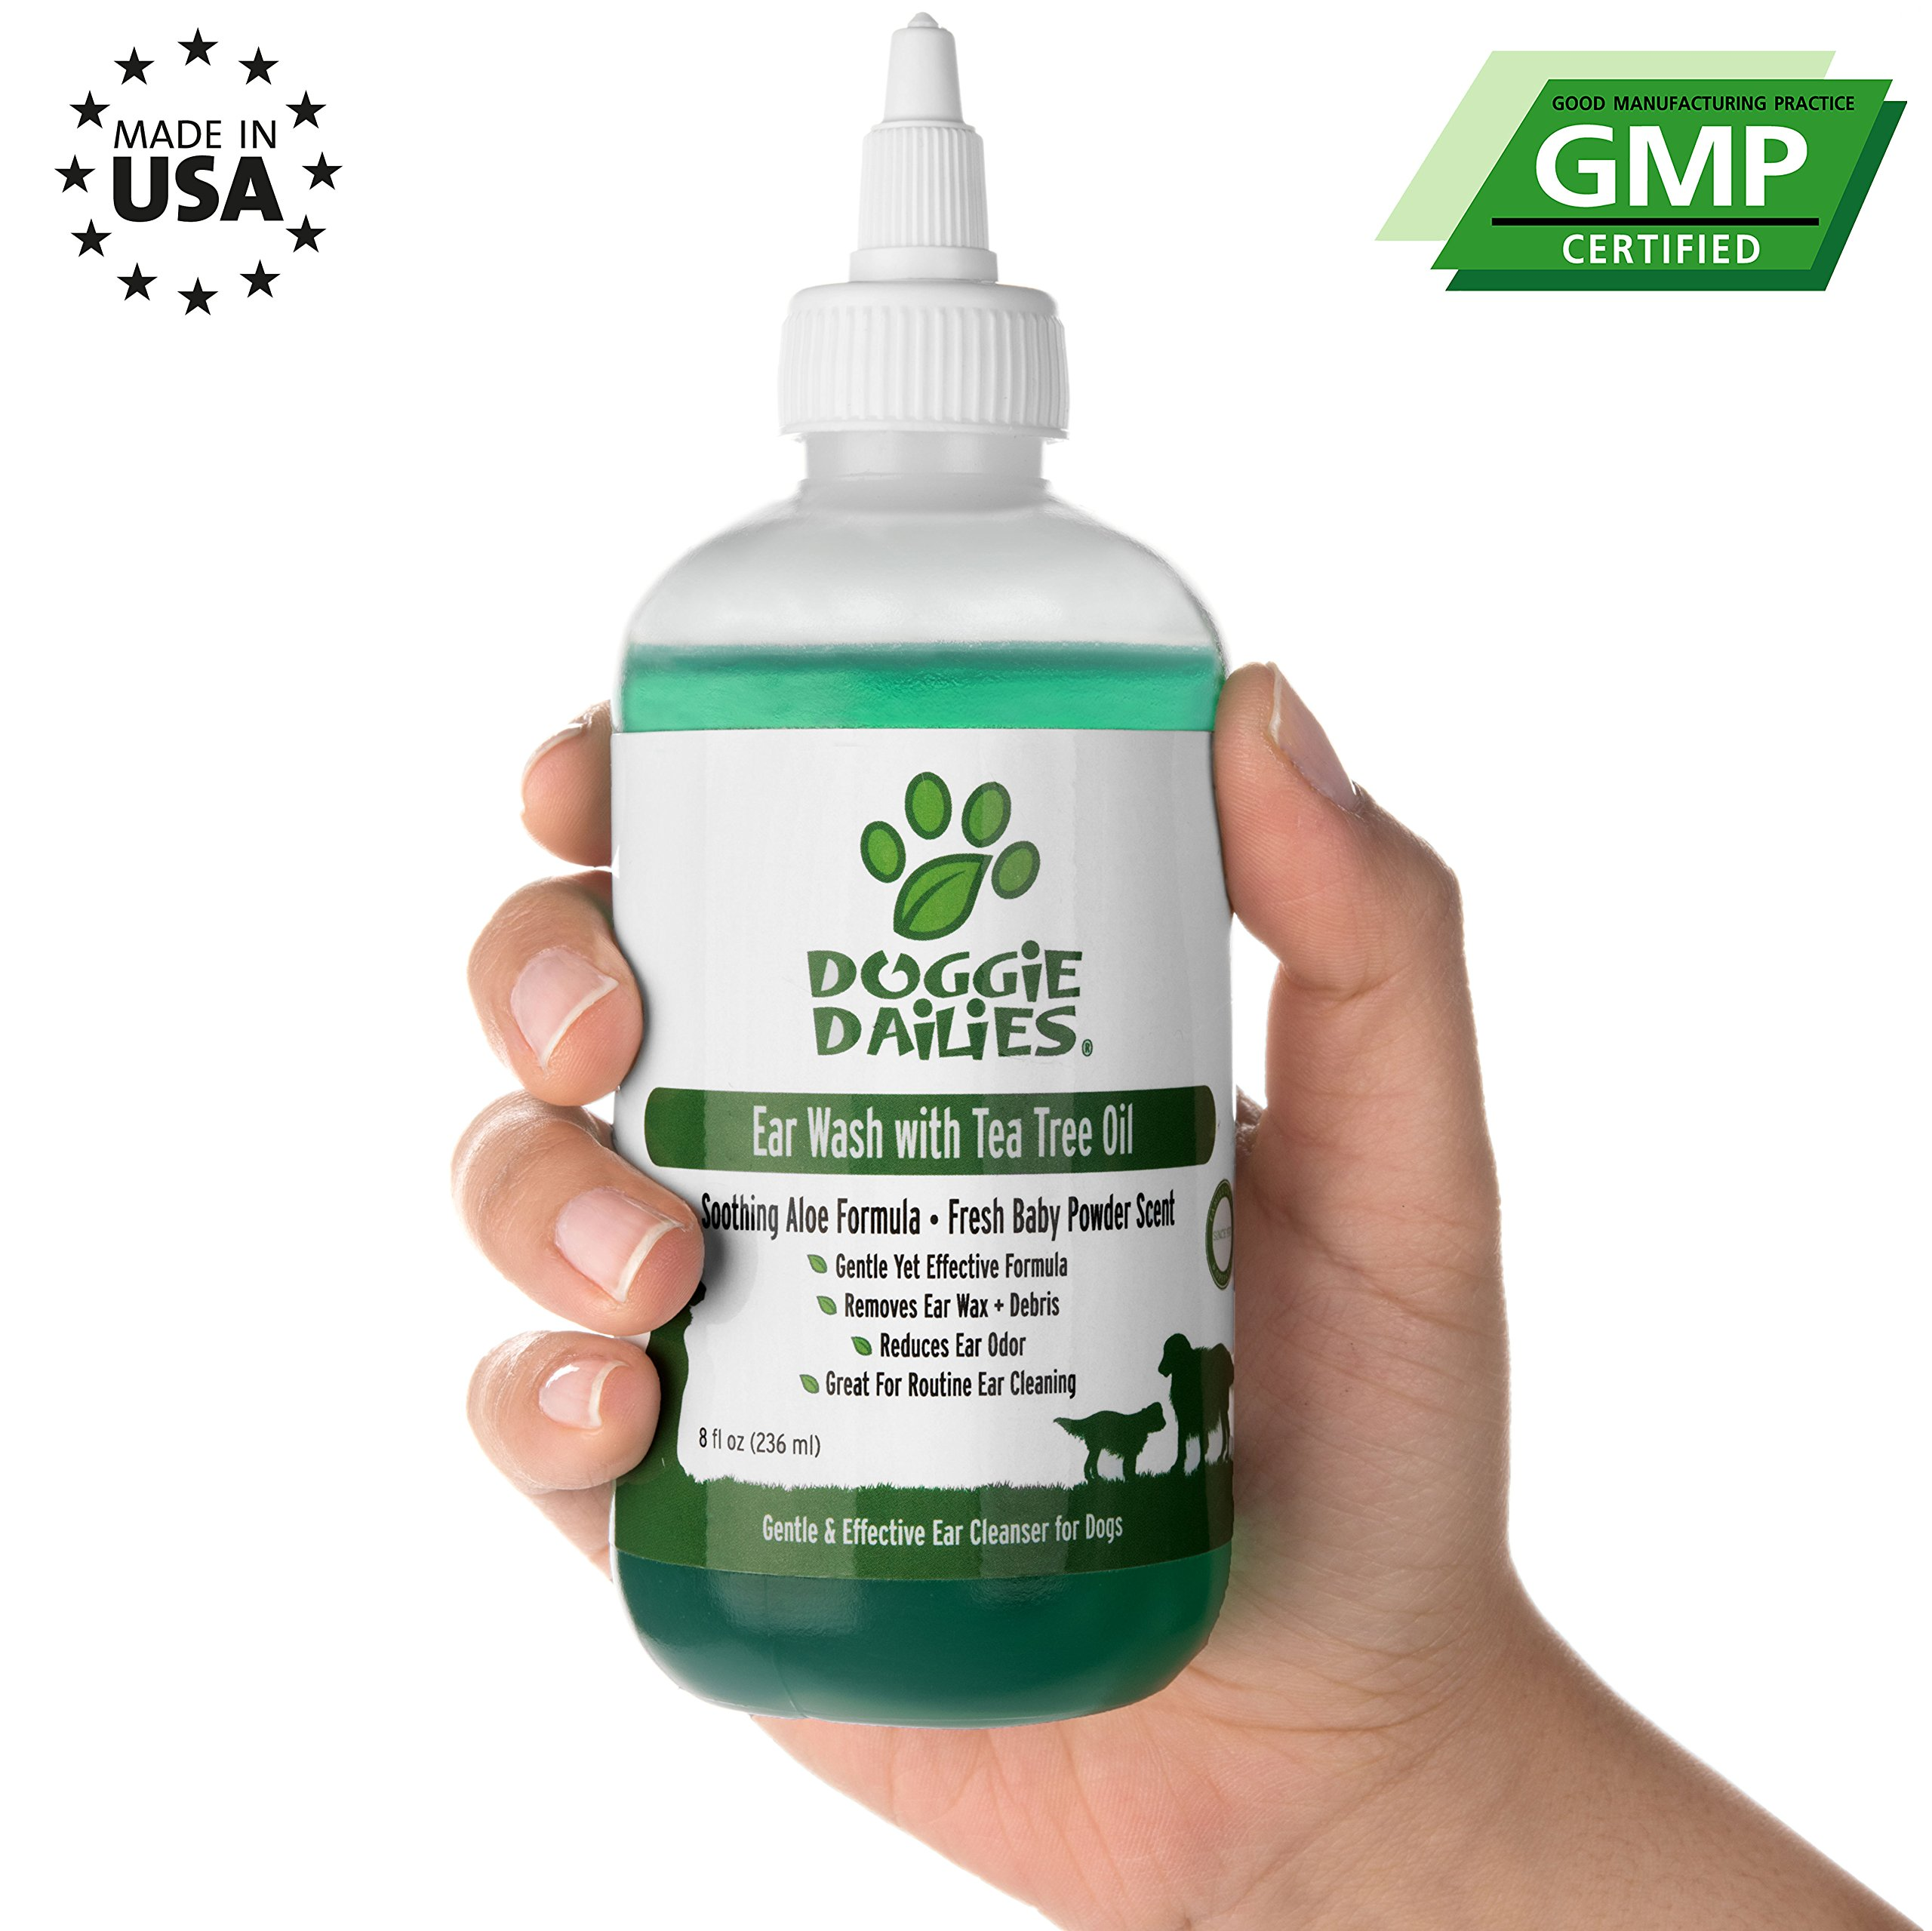 Doggie Dailies Pet Ear Cleaner: Tea Tree Oil, Witch Hazel & Soothing Aloe, Vet Formulated Ear Cleaner for Dogs & Cats, Gently Removes Wax & Debris, Reduces Odor, and Helps Prevent Mites & Infections